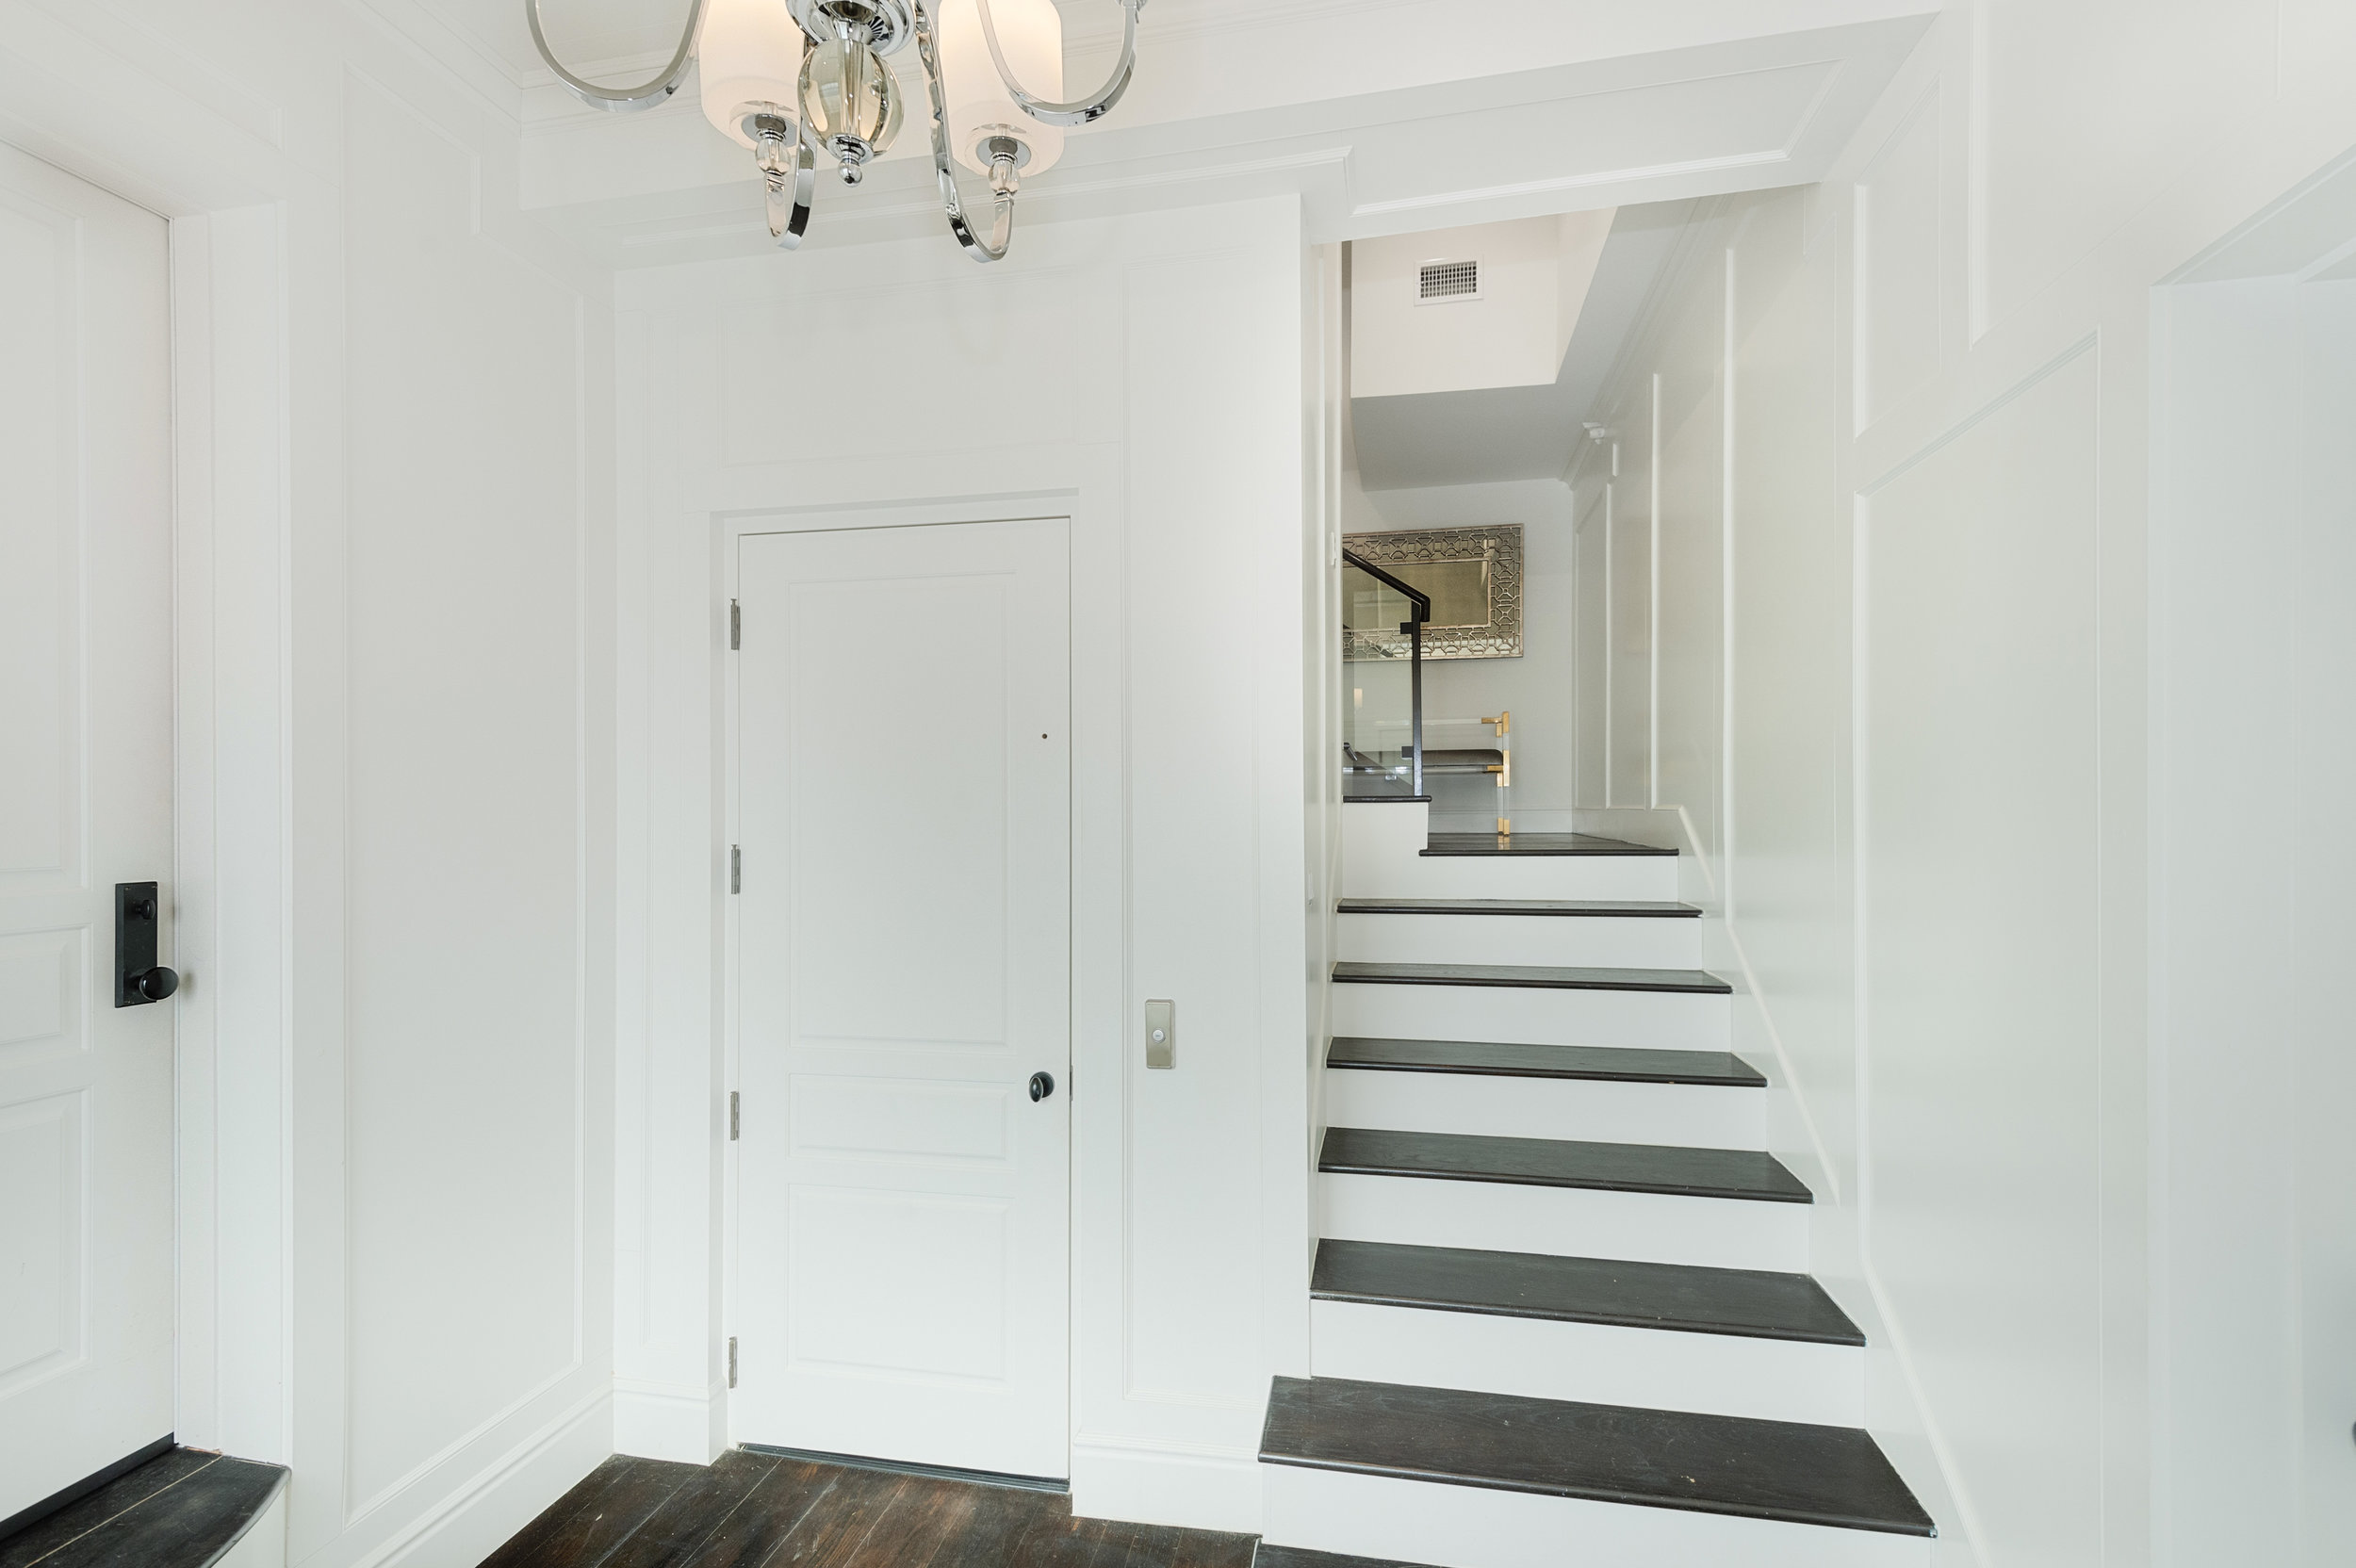 024 Entry 17819 Castellammare Drive Pacific Palisades For Sale Lease The Malibu Life Team Compass Luxury Real Estate.jpg